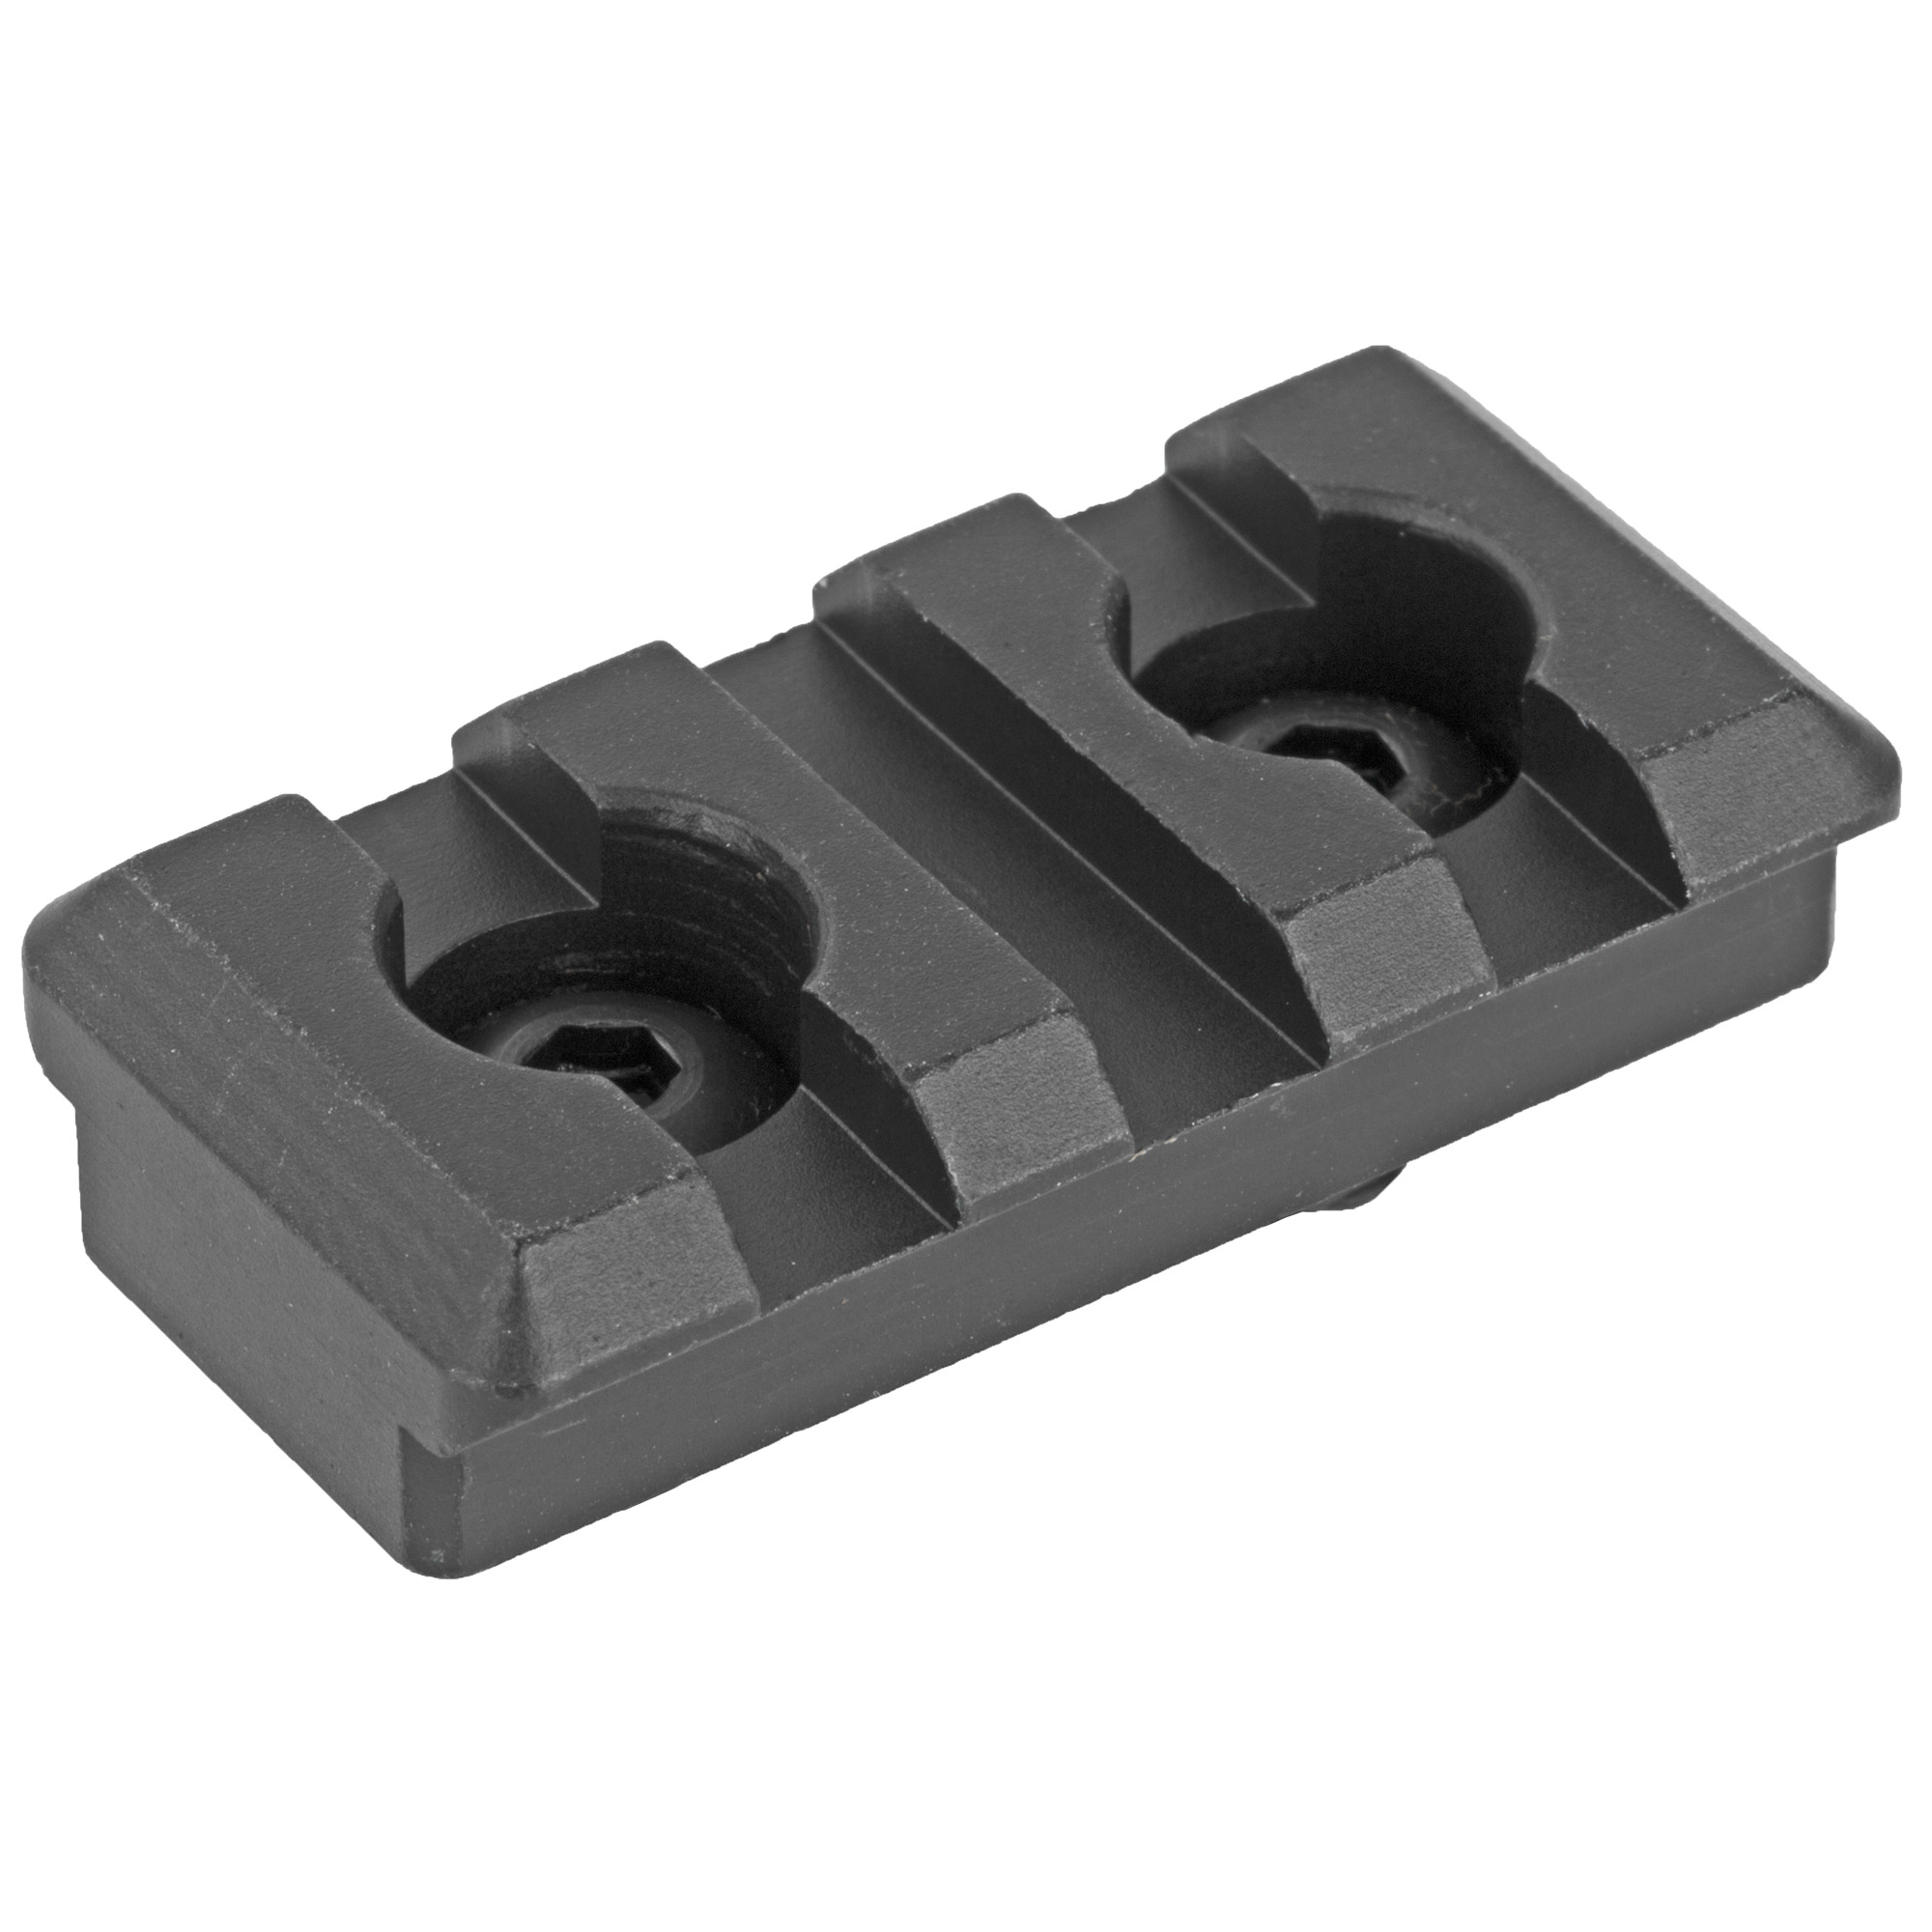 Easily add M-Lok rail sections to your M-Lok equipped handguard with the Midwest Industries M-Lok 1913 Mil Spec Rail Sections. Now you can place your accessories where you want and need them leaving you with a smooth handguard everywhere else. If you want versatility you need the Midwest Industries M-Lok 1913 Mil Spec Rail Sections.